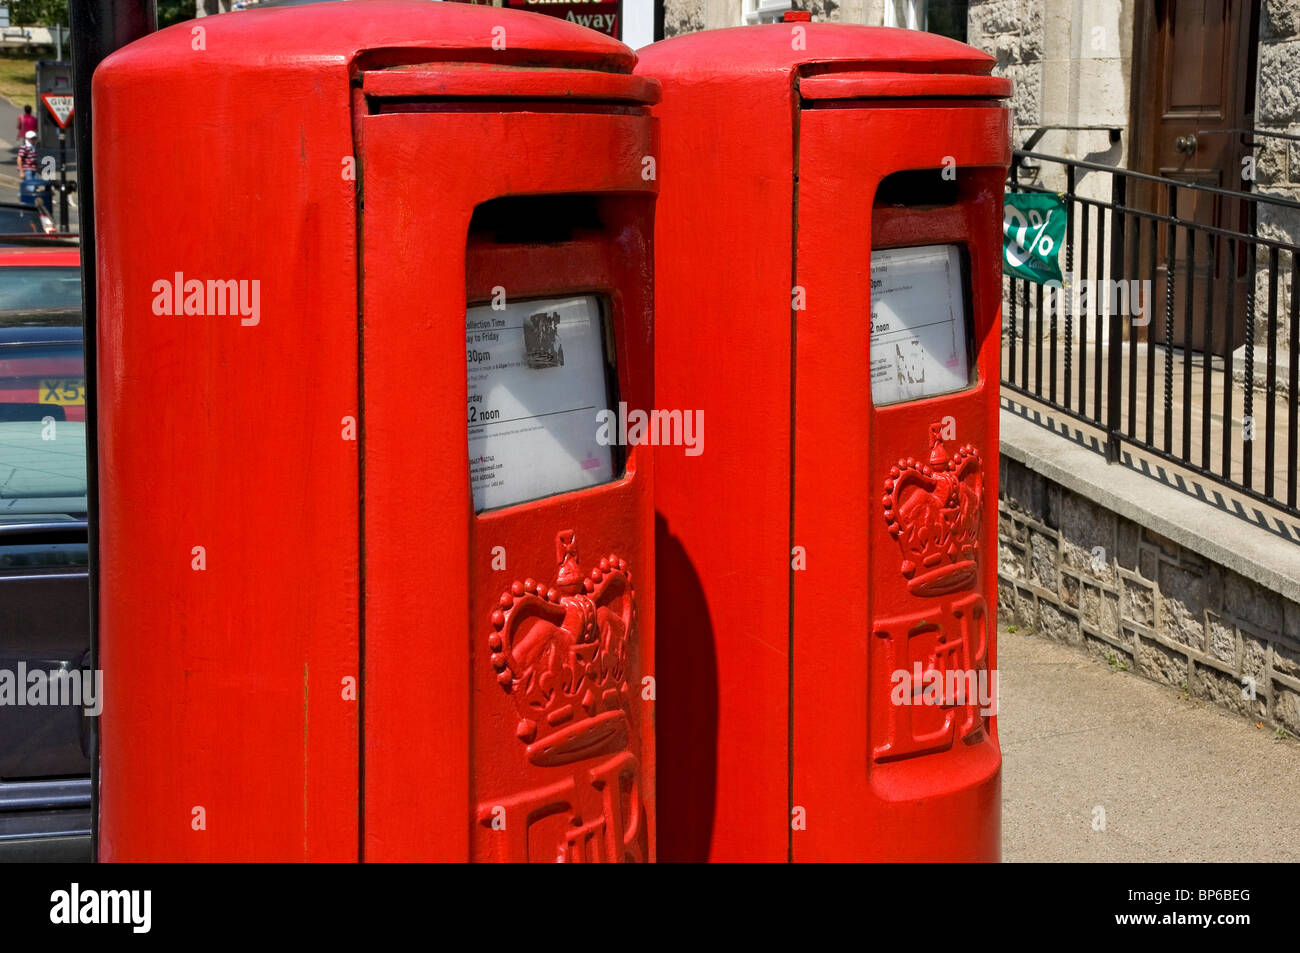 Red post office letter boxes uk stock photos red post office letter boxes uk stock images alamy - Great britain post office ...